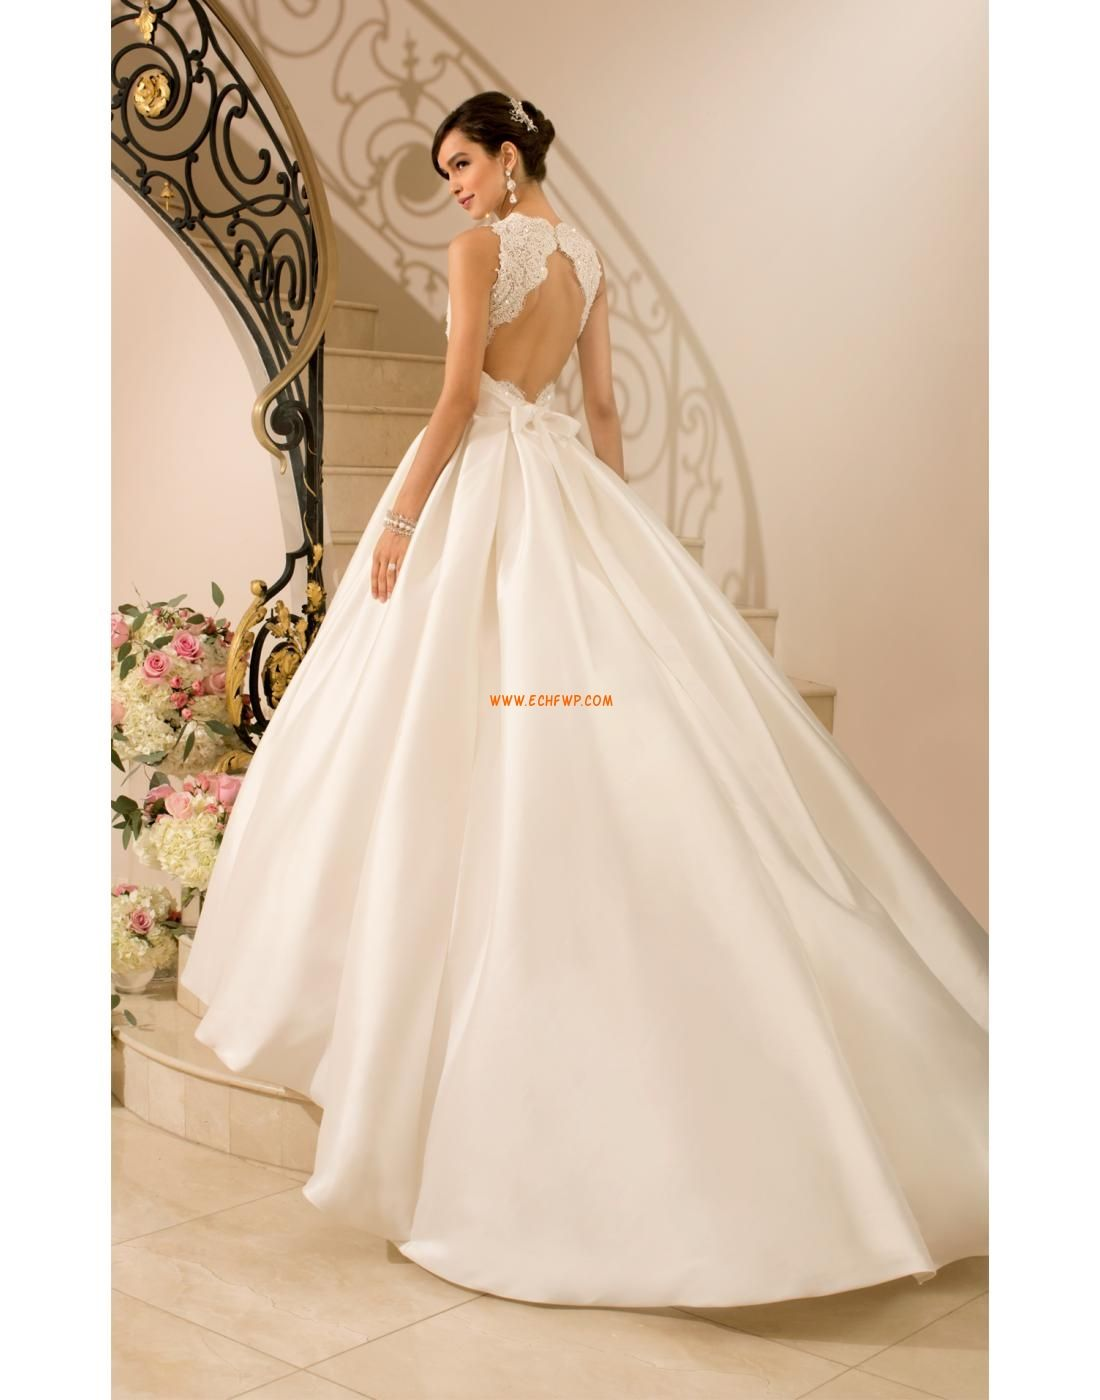 ad152867b665 CCs Boutique offers a huge selection of Stella York wedding dresses in  Tampa. Call to schedule an appointment to see our Stella York wedding gowns.